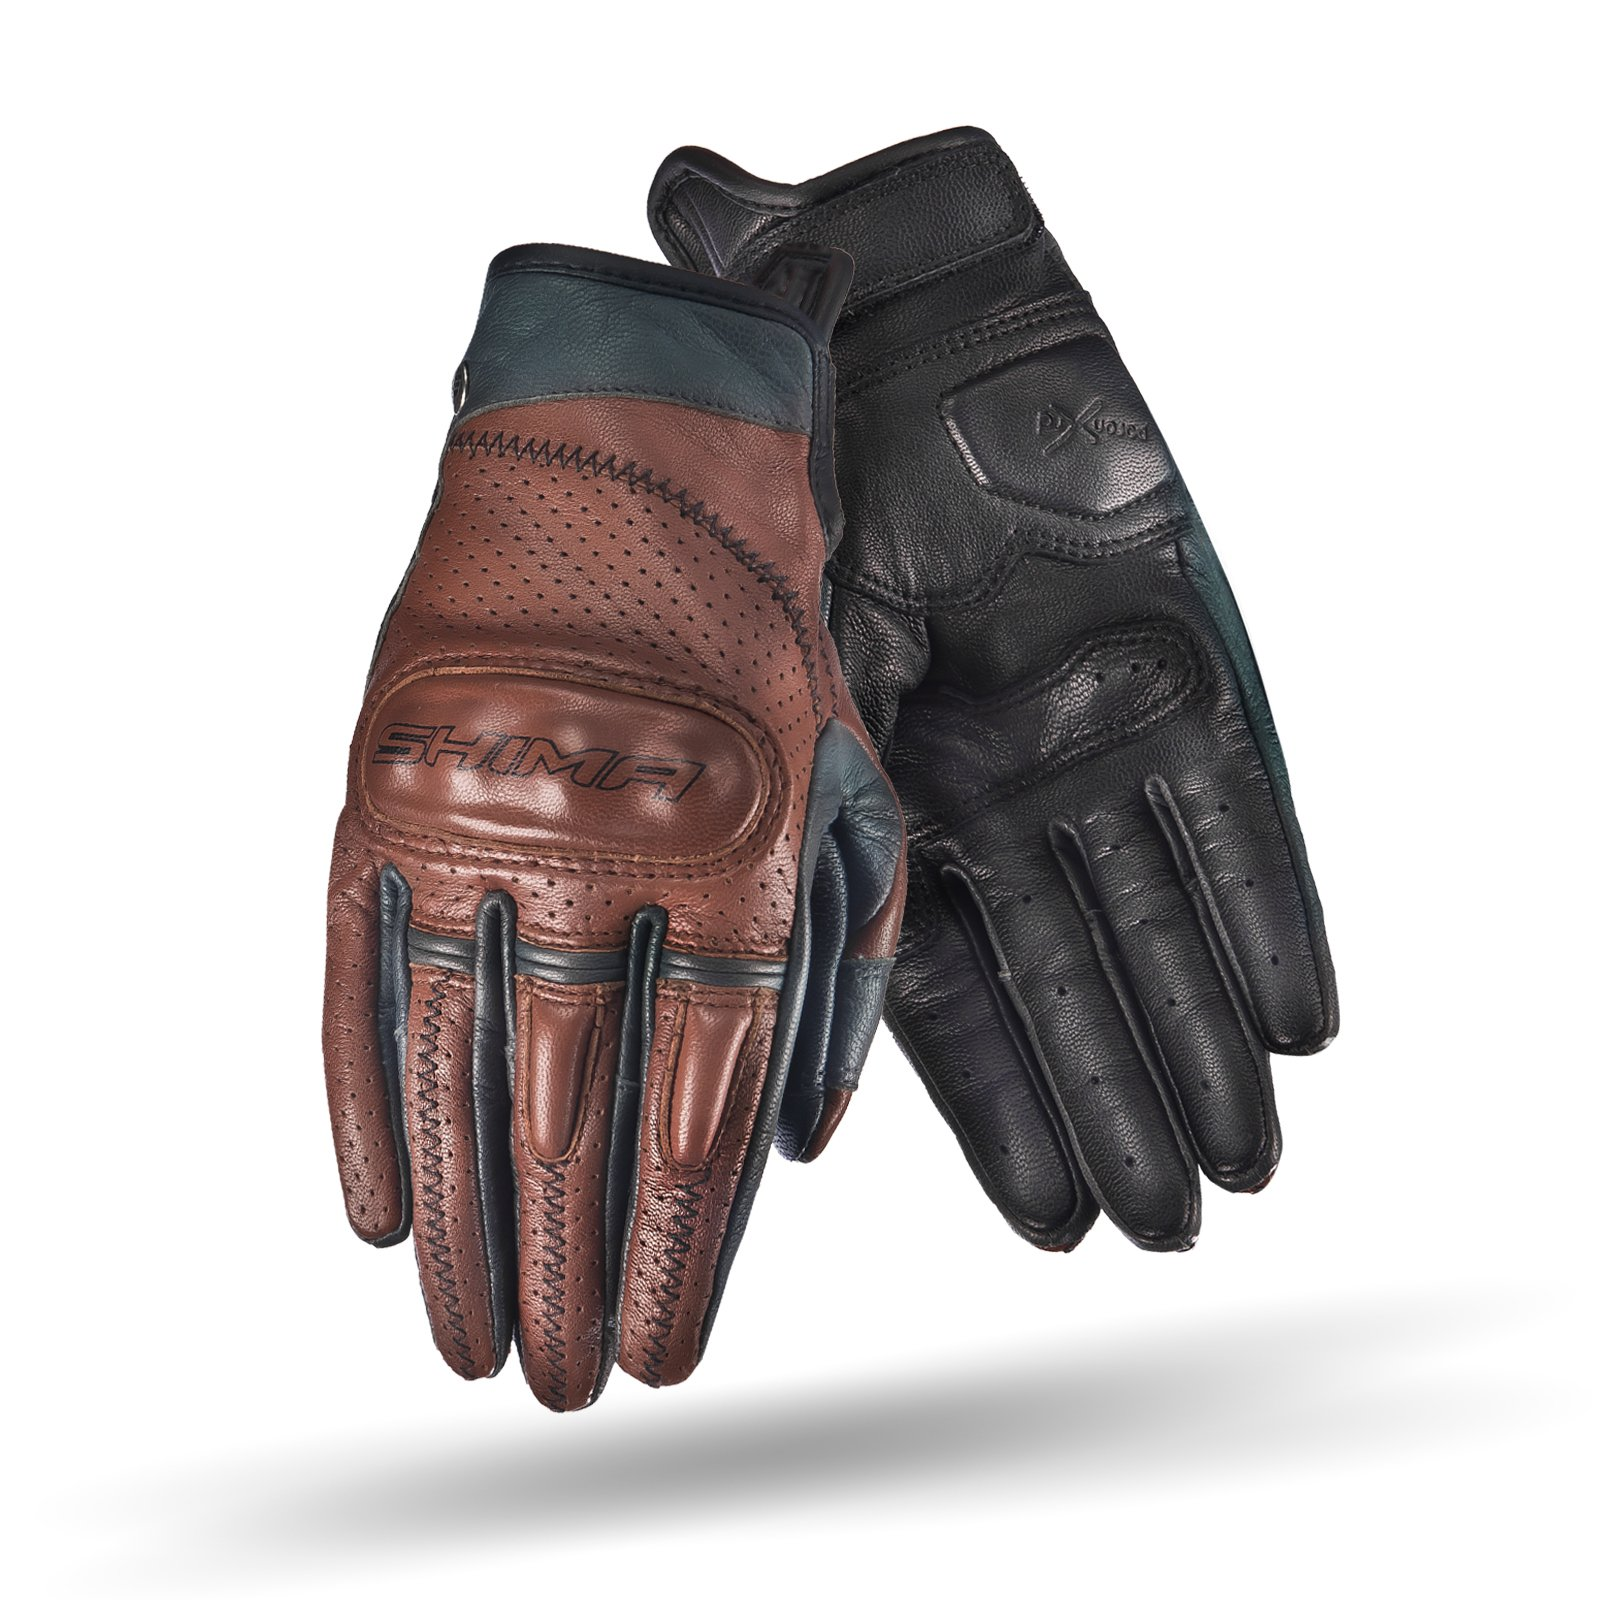 SHIMA CALIBER LADY, Women Retro Vintage Custom Summer Leather Motorcycle Gloves (XS/S/M/L) (L, Brown) by SHIMA (Image #3)